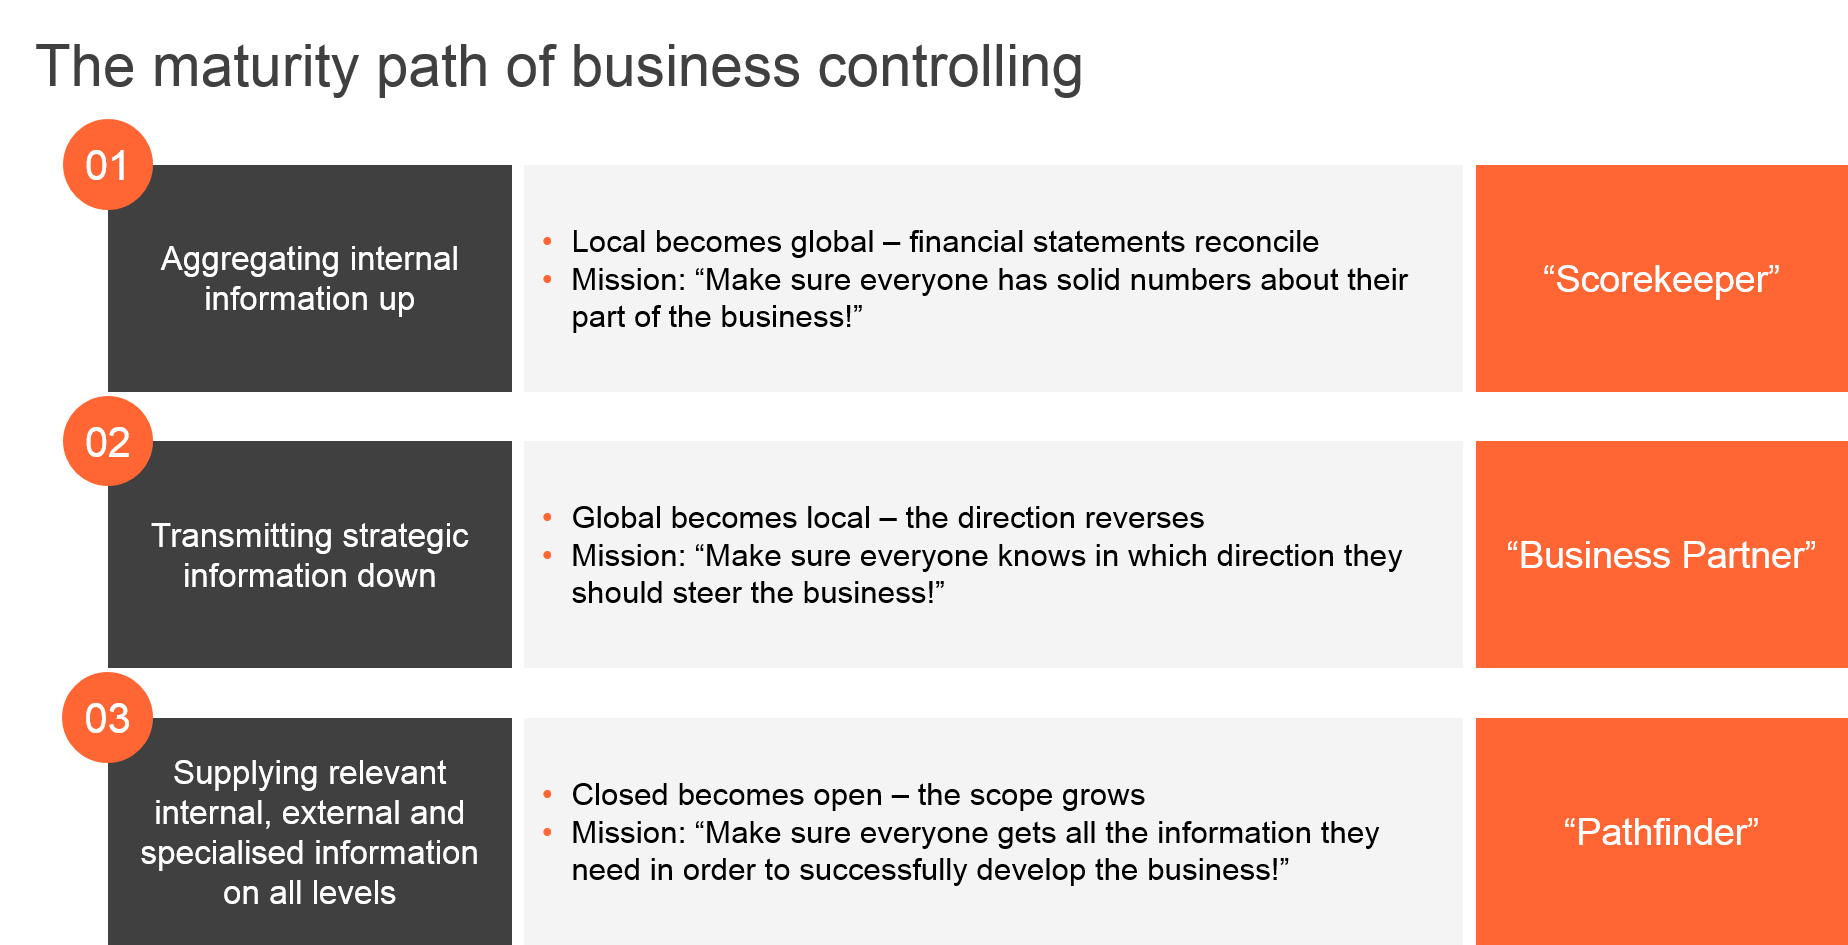 Maturity path of business controlling